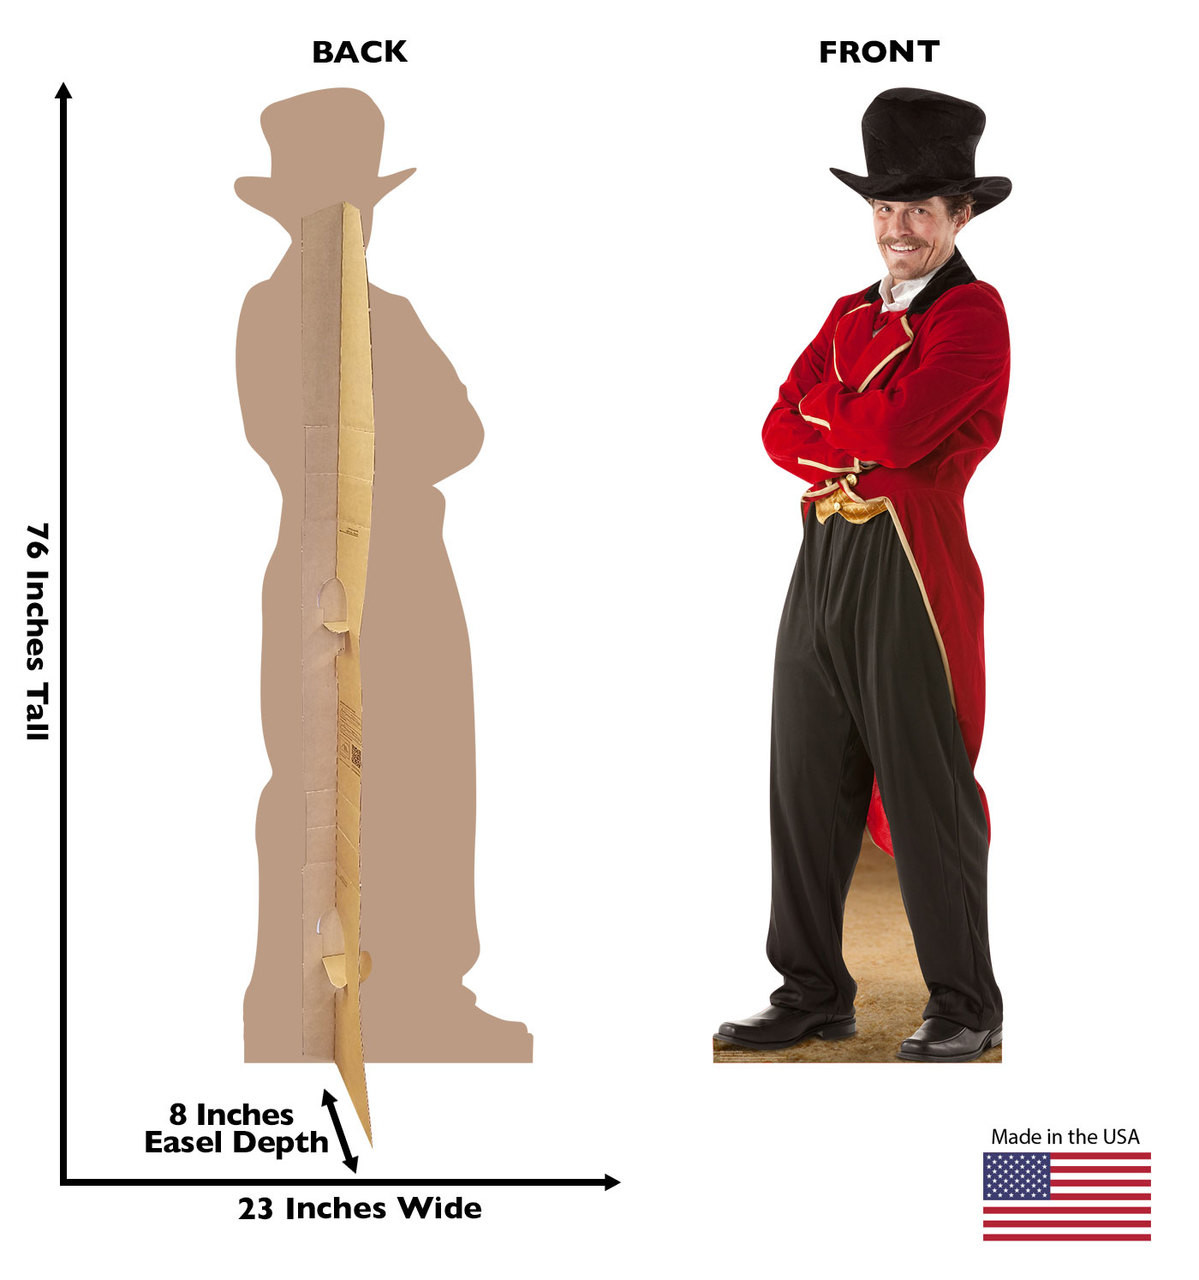 Standee showing front and back with dimensions.